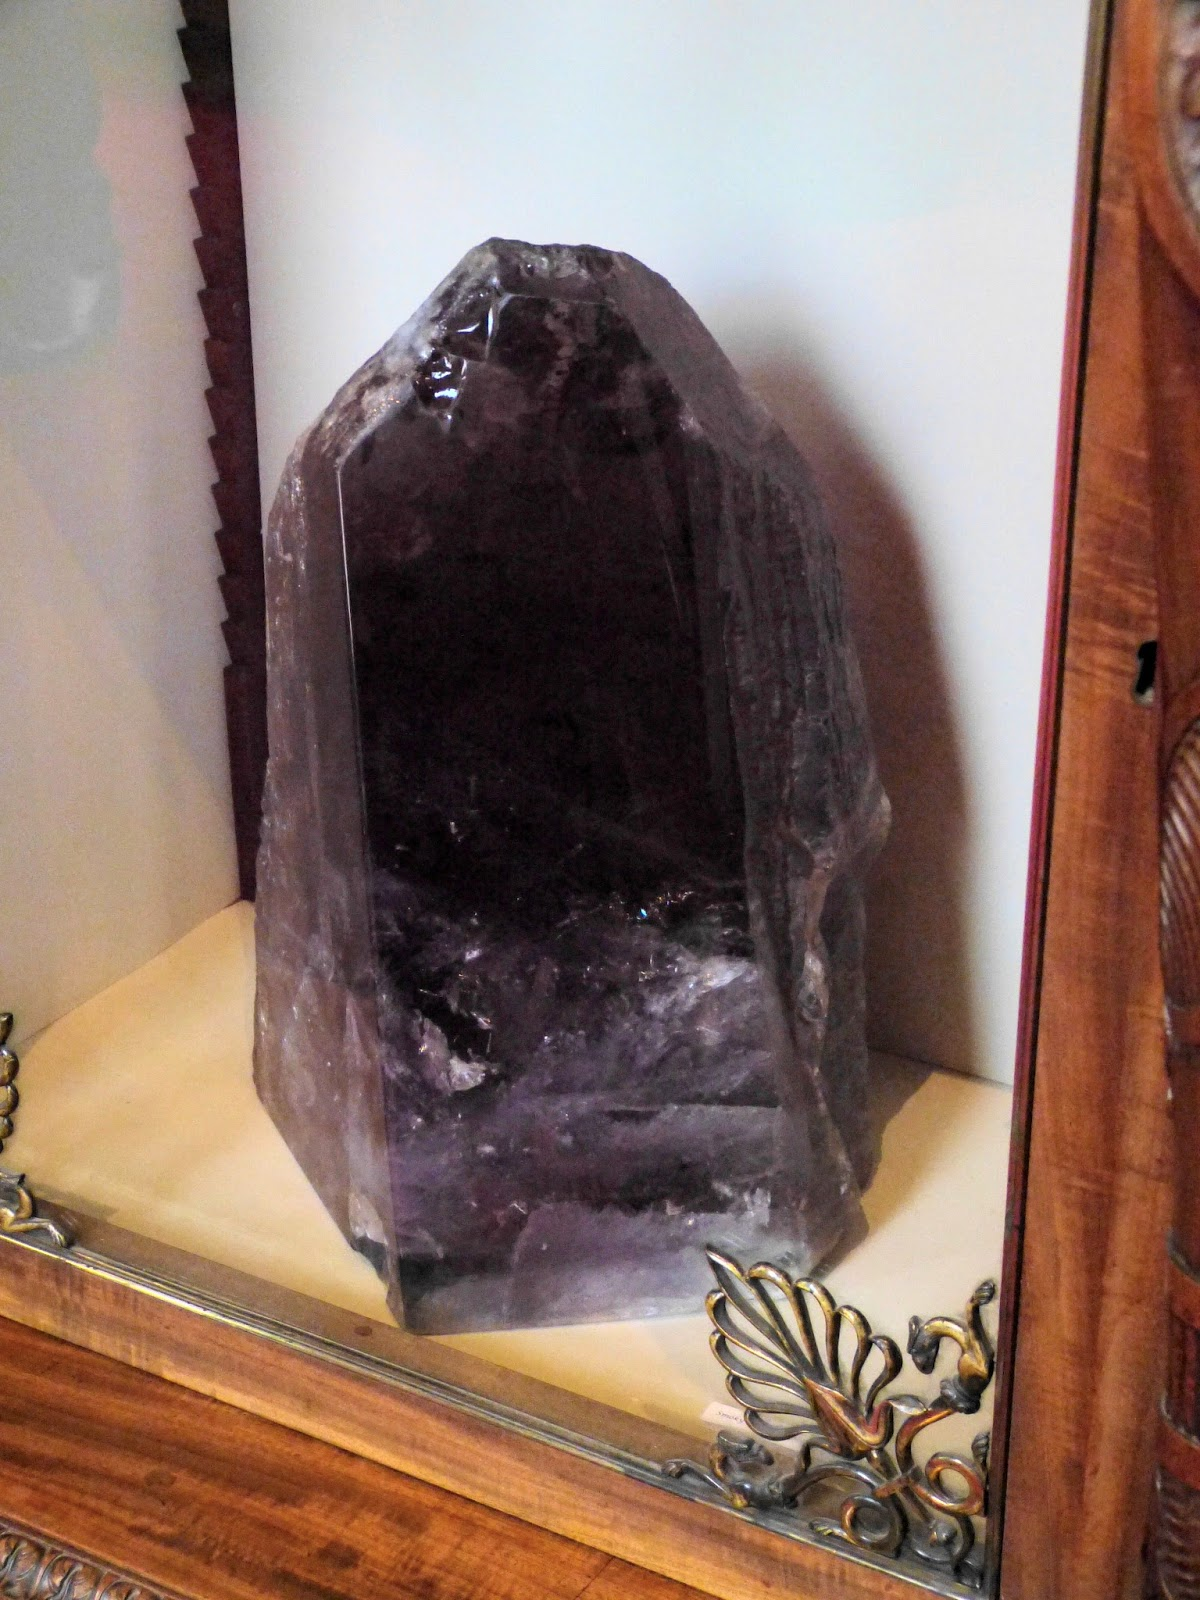 Smoky quartz crystal from the Simplon Pass on display in the South Sketch Gallery, Chatsworth